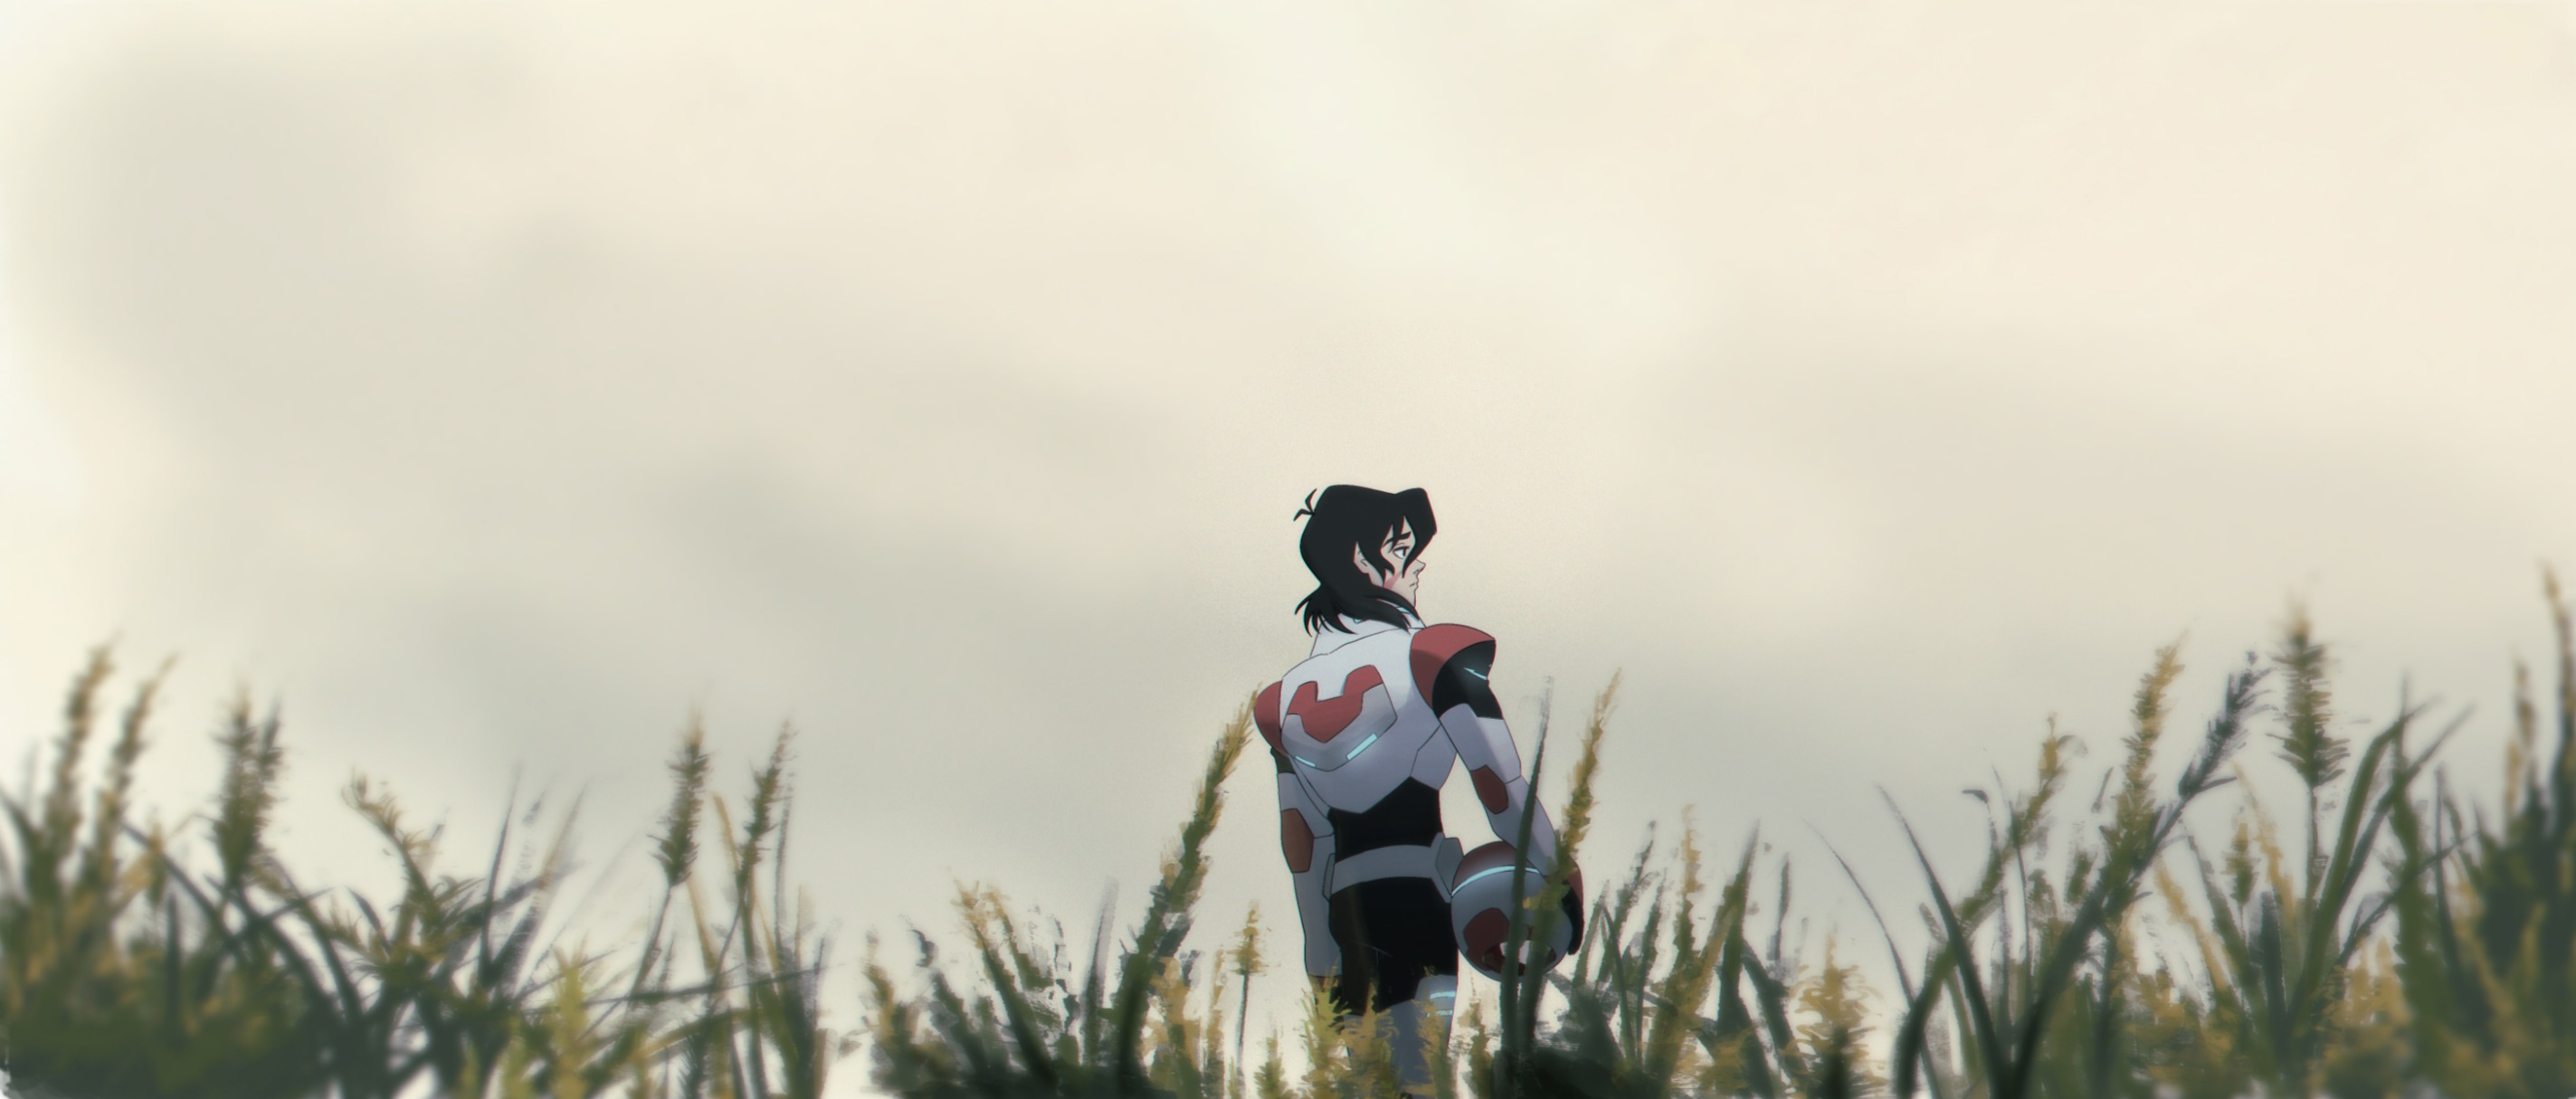 VOLTRON-Keith_Sakanaction_TabunKaze_edit